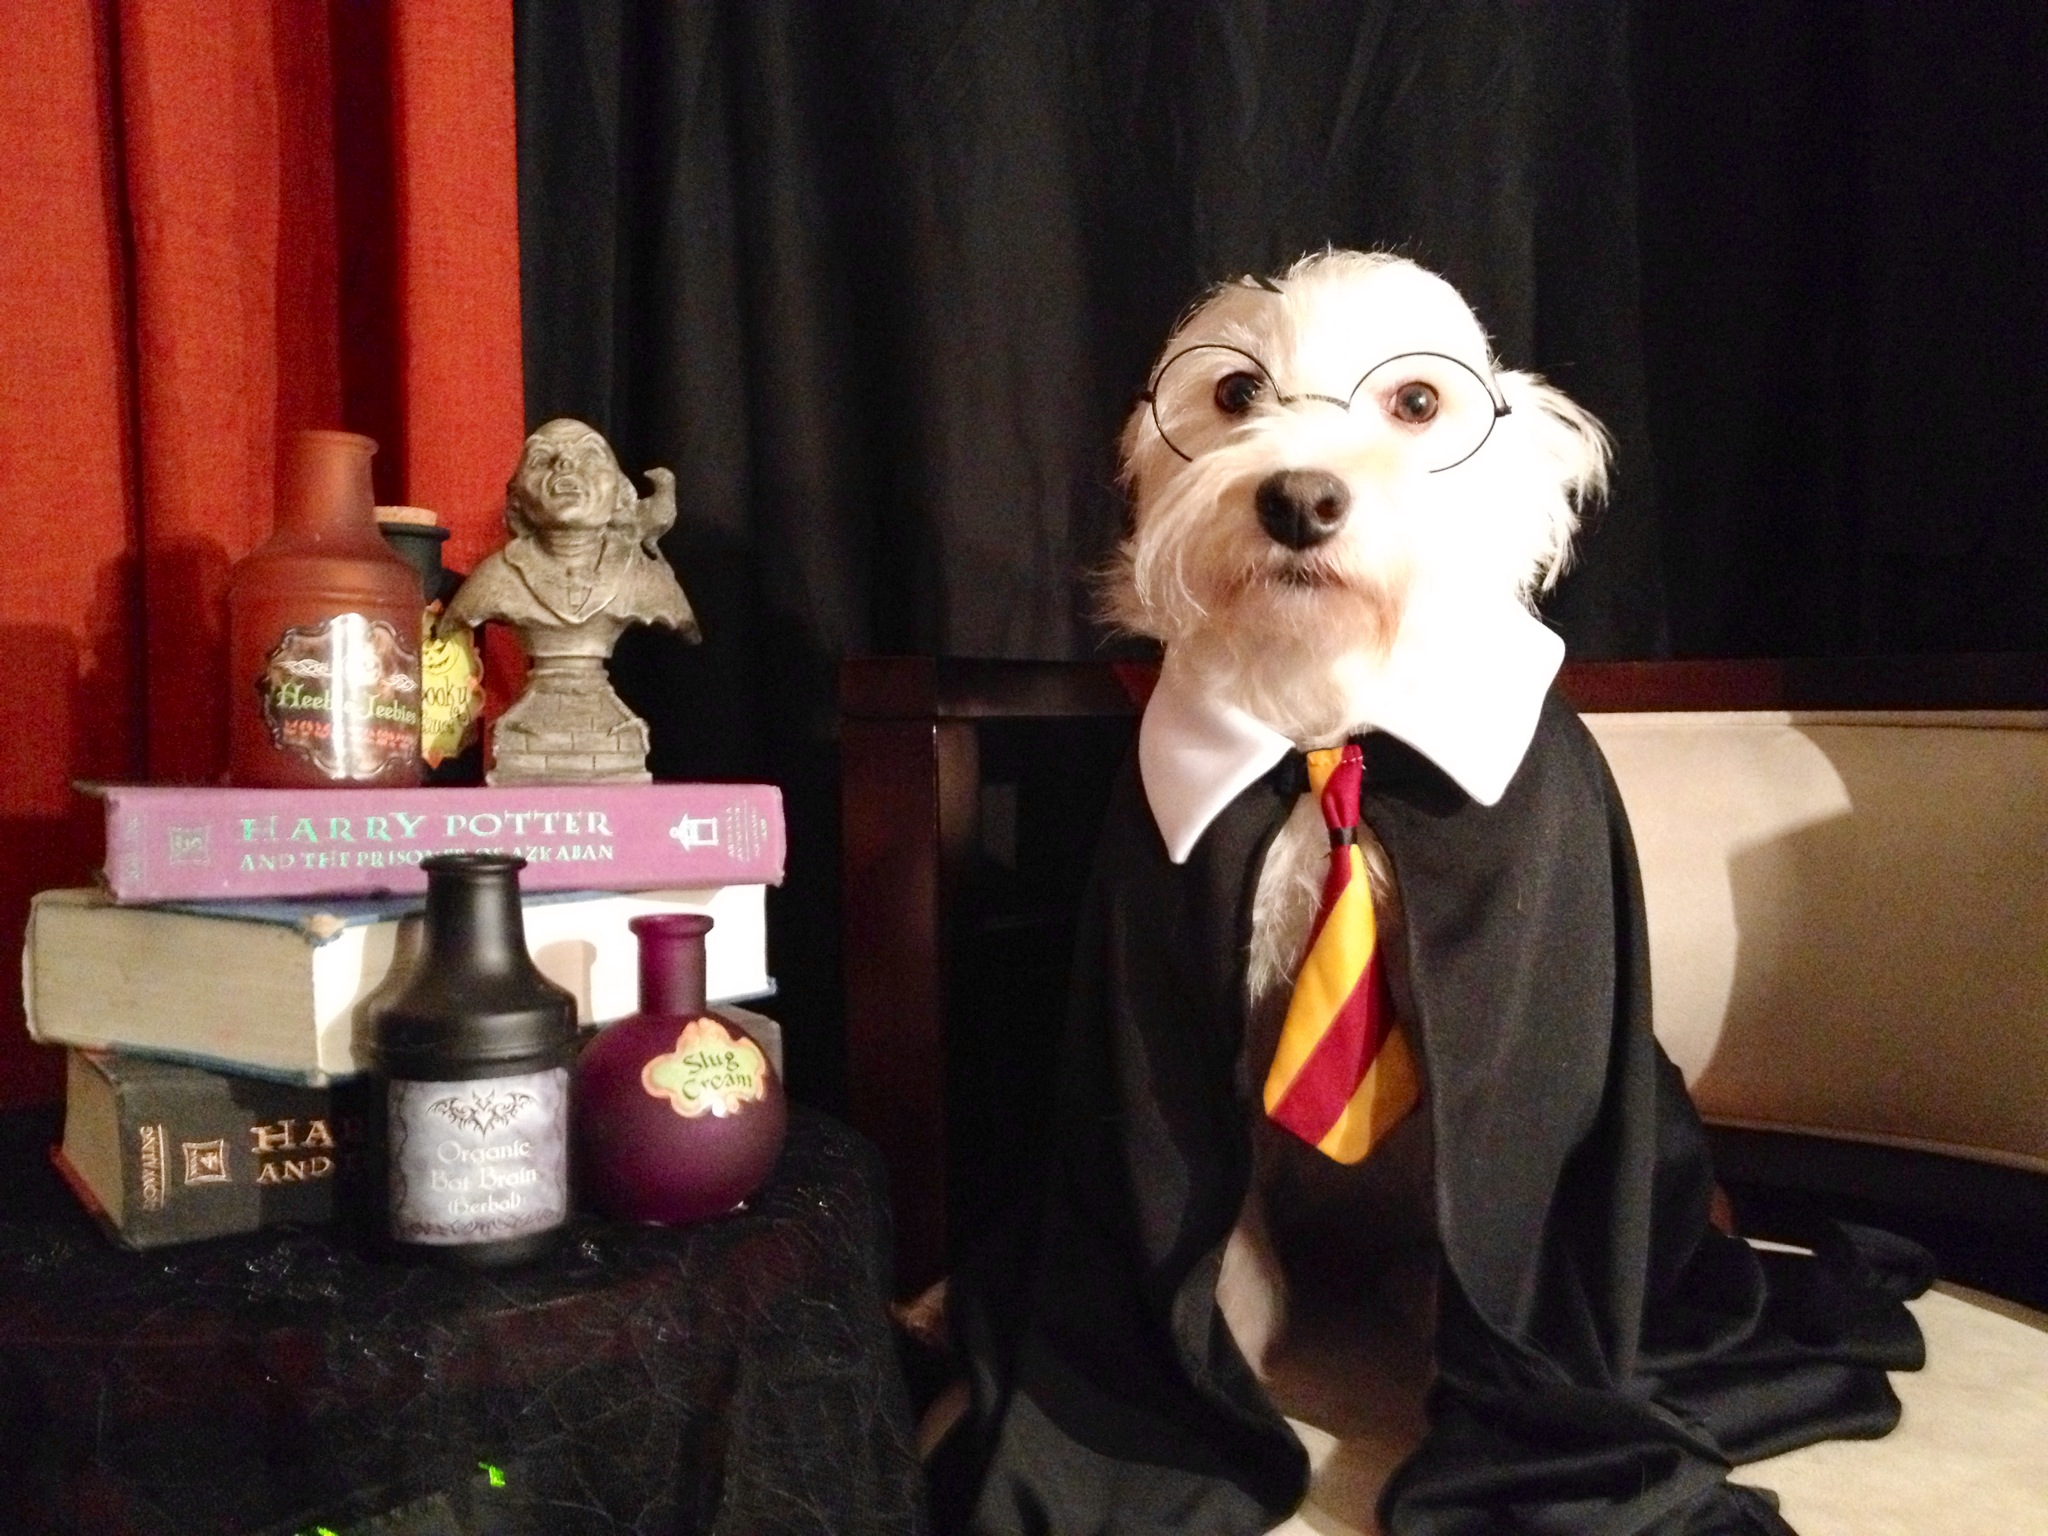 What Hogwarts House Is My Dog In